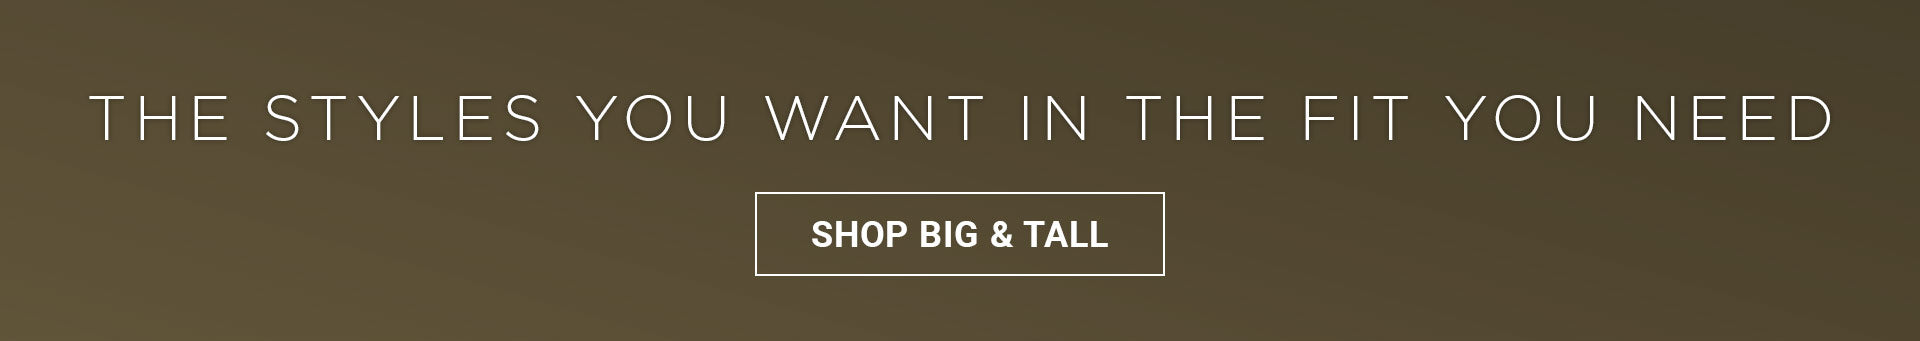 THE STYLES YOU WANT IN THE FIT YOU NEED - BIG & TALL - Shop Now